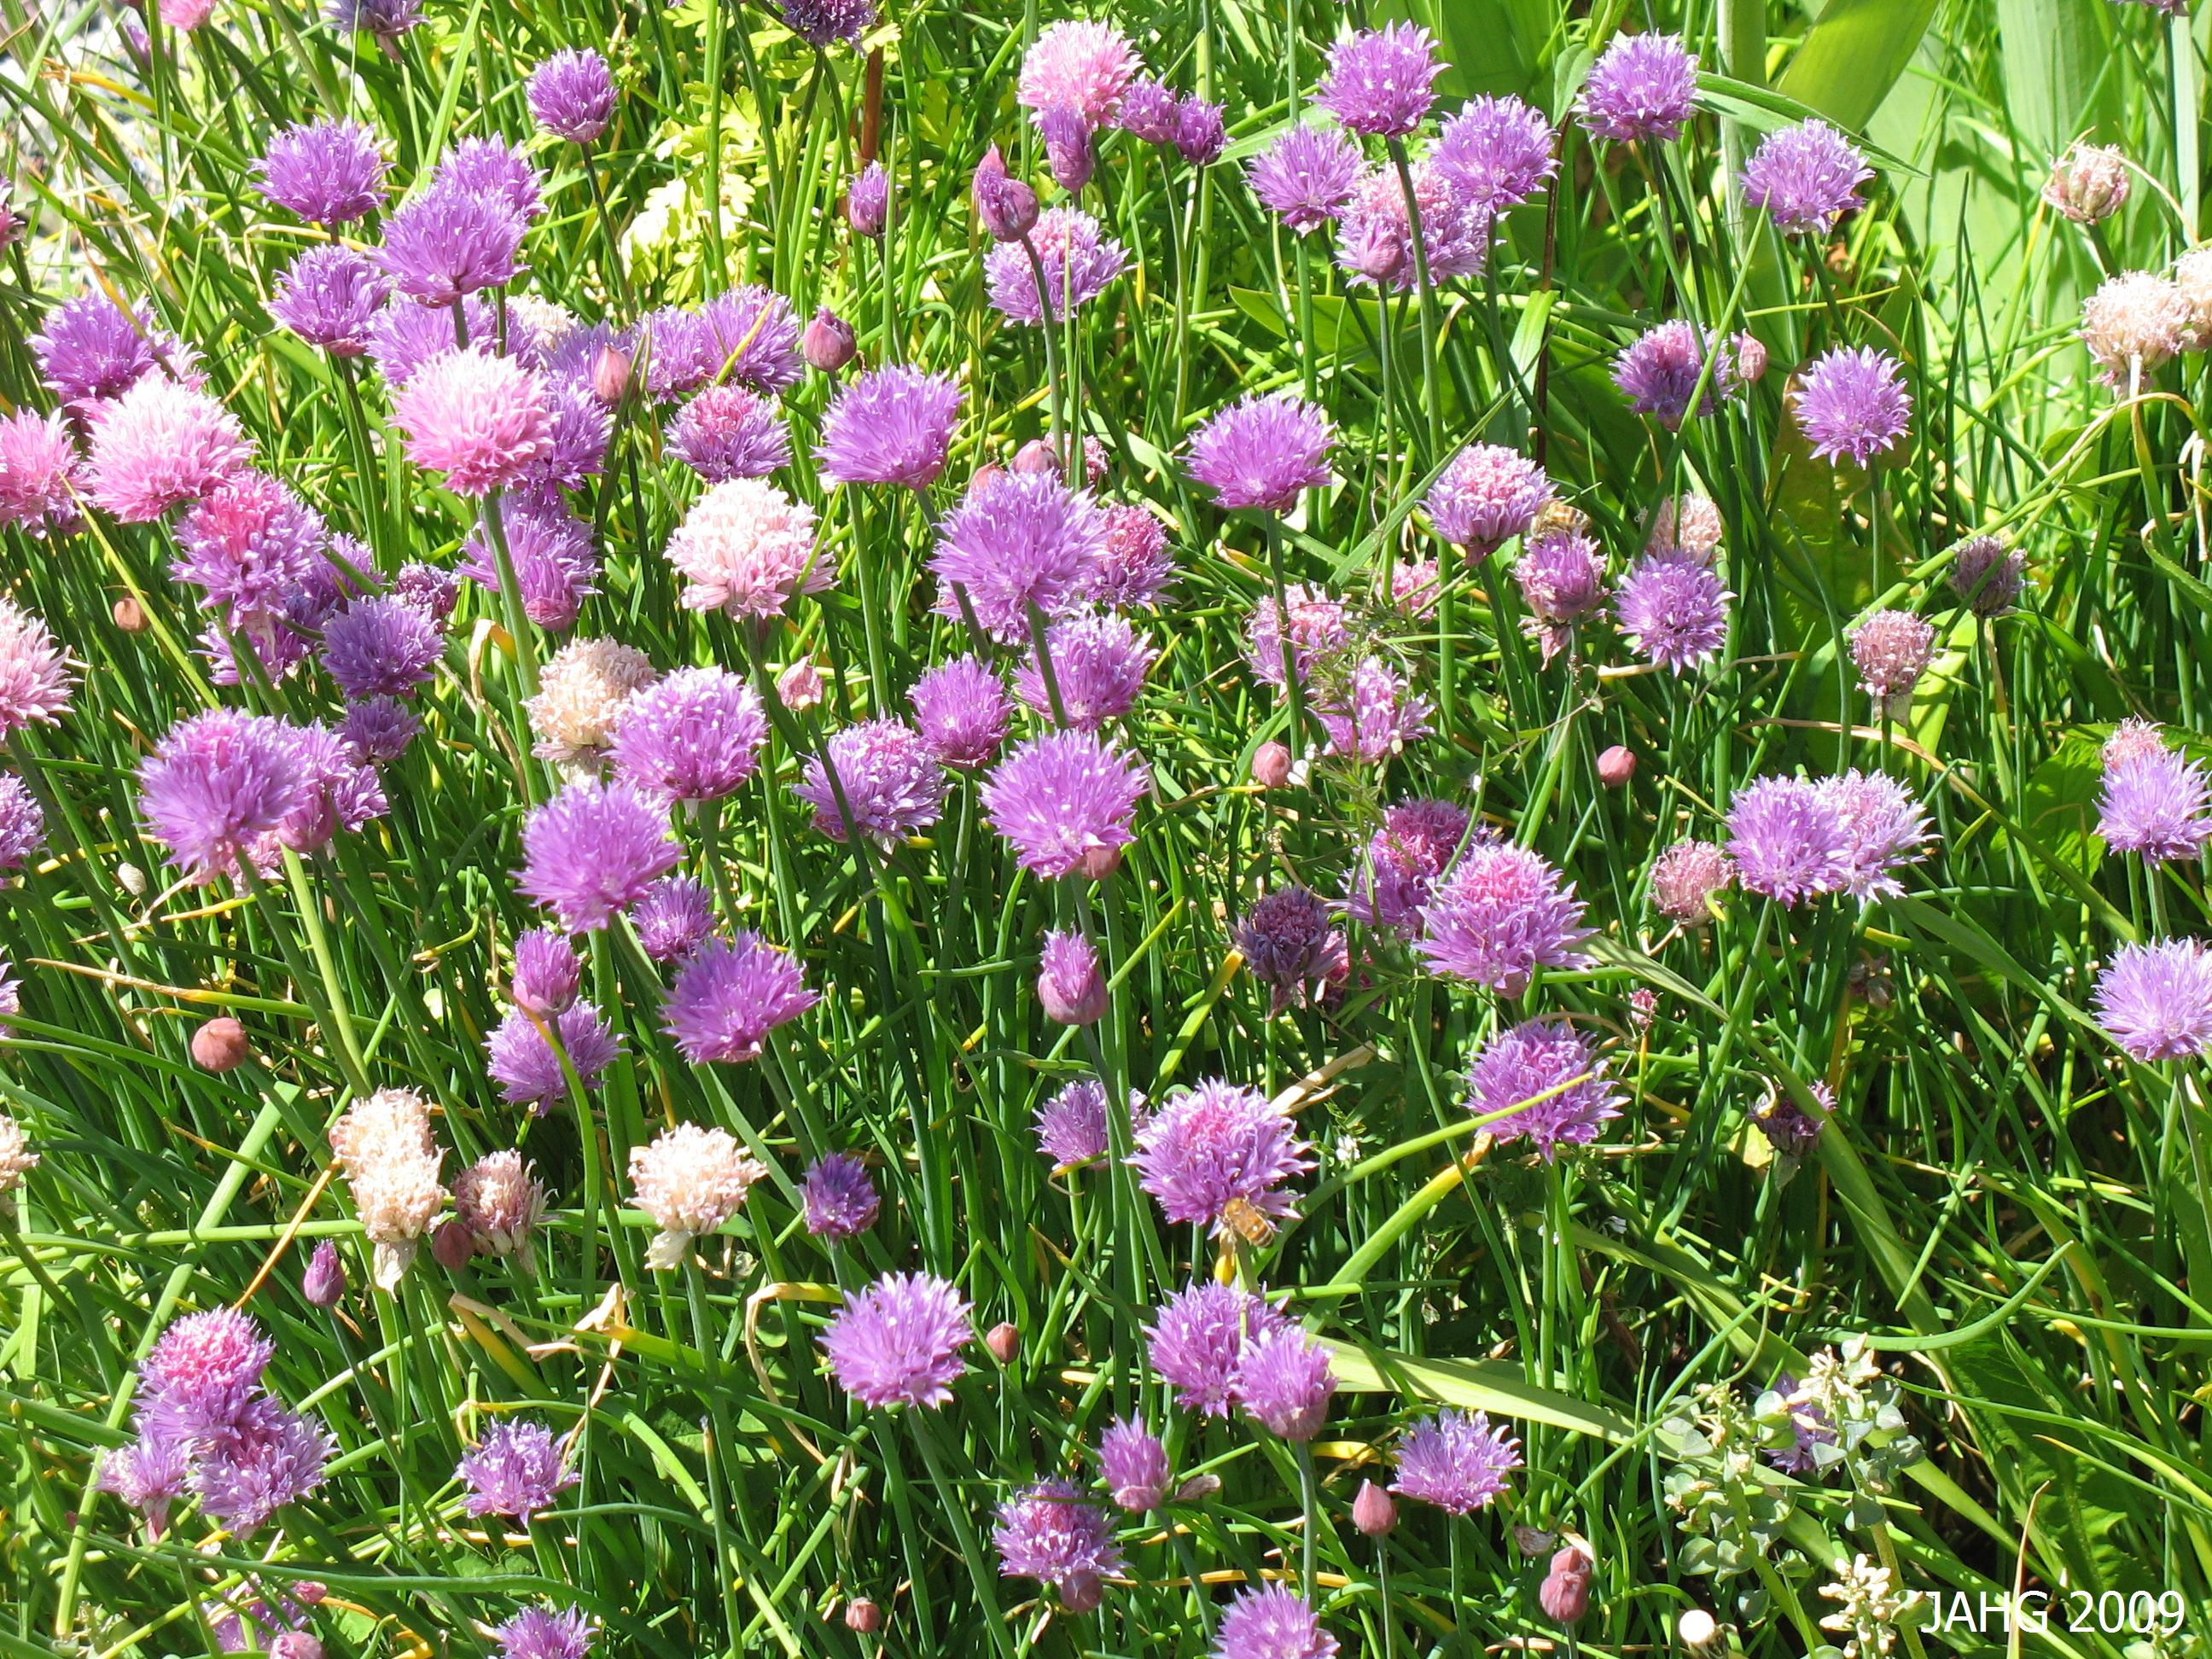 The Familiar Papery Purple Flowers of Chives.